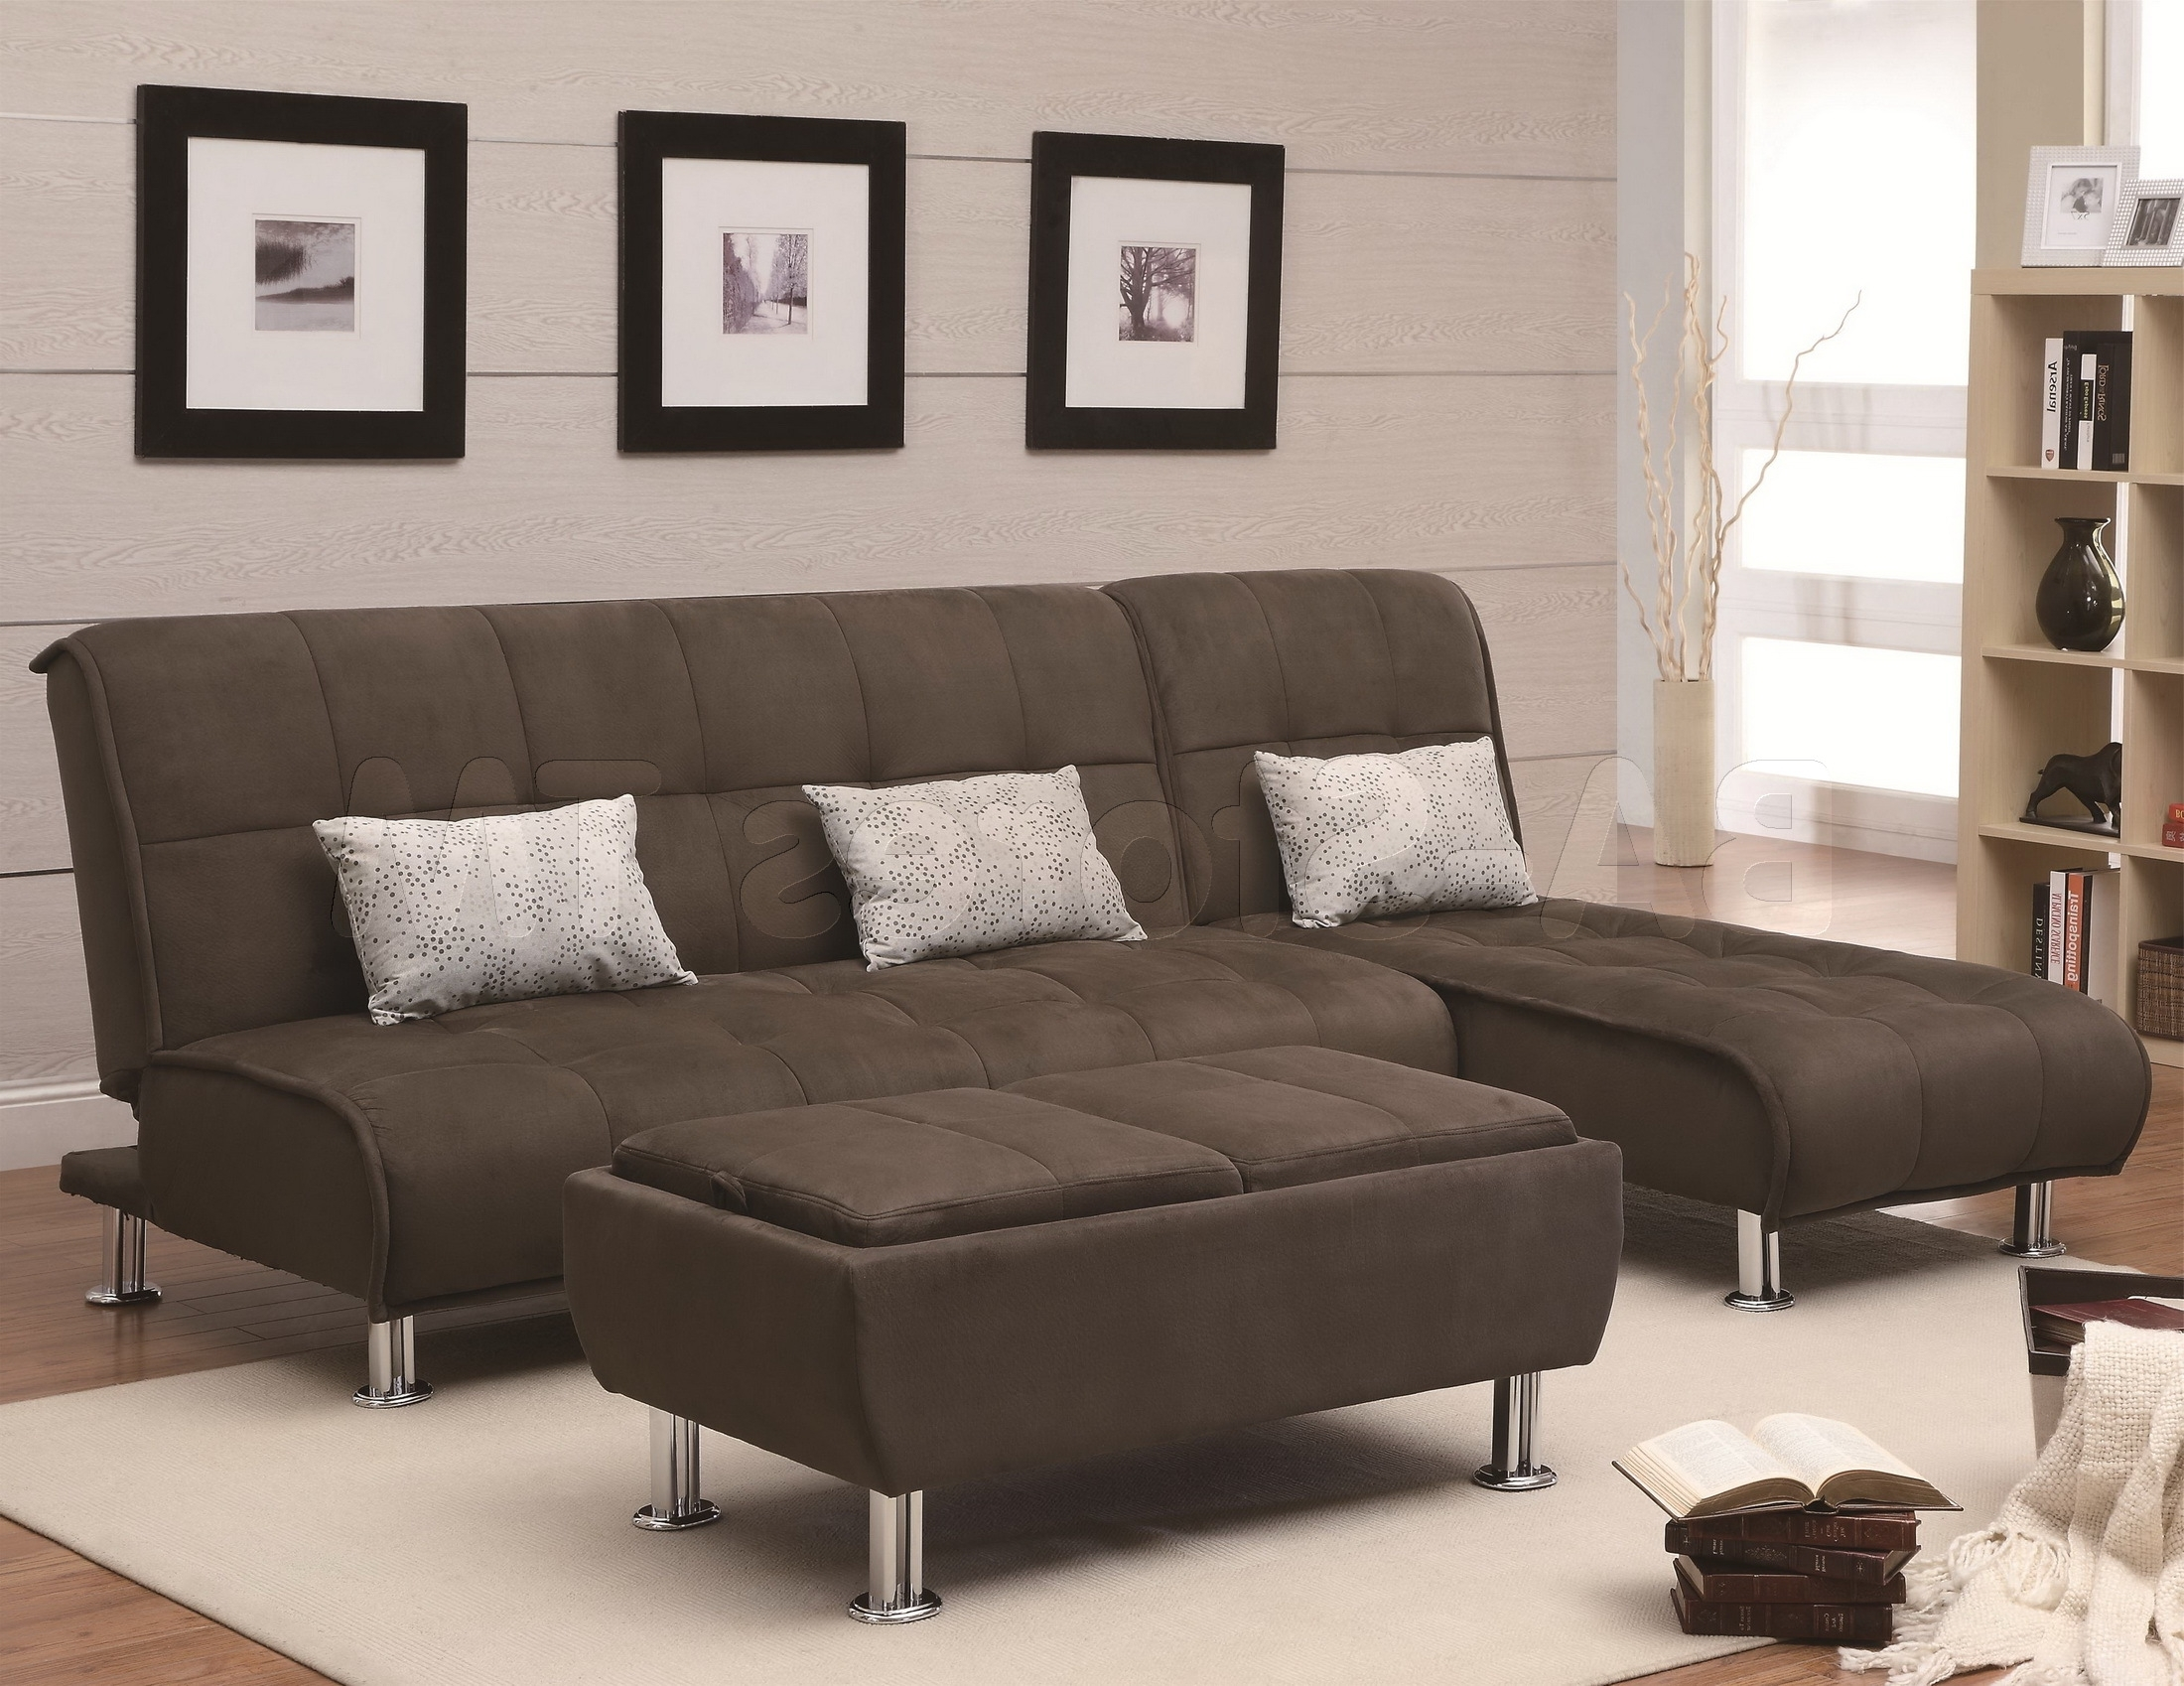 2018 Furniture : Sectional Sofa With Recliner Sectional Sofa 84 Inches For Victoria Bc Sectional Sofas (View 1 of 15)